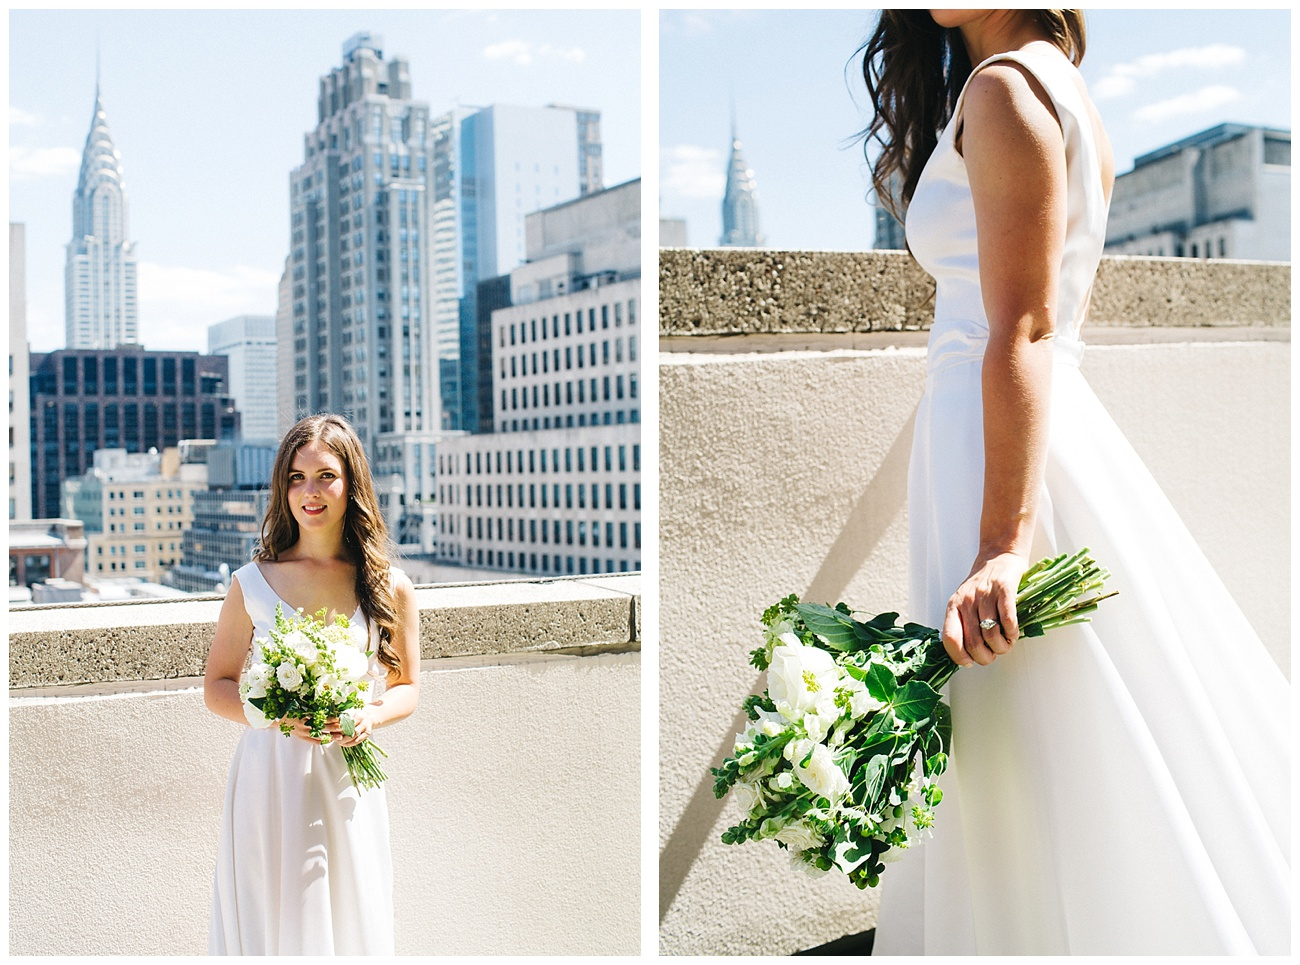 Christine Ted NYC Elopement Wedding_0013